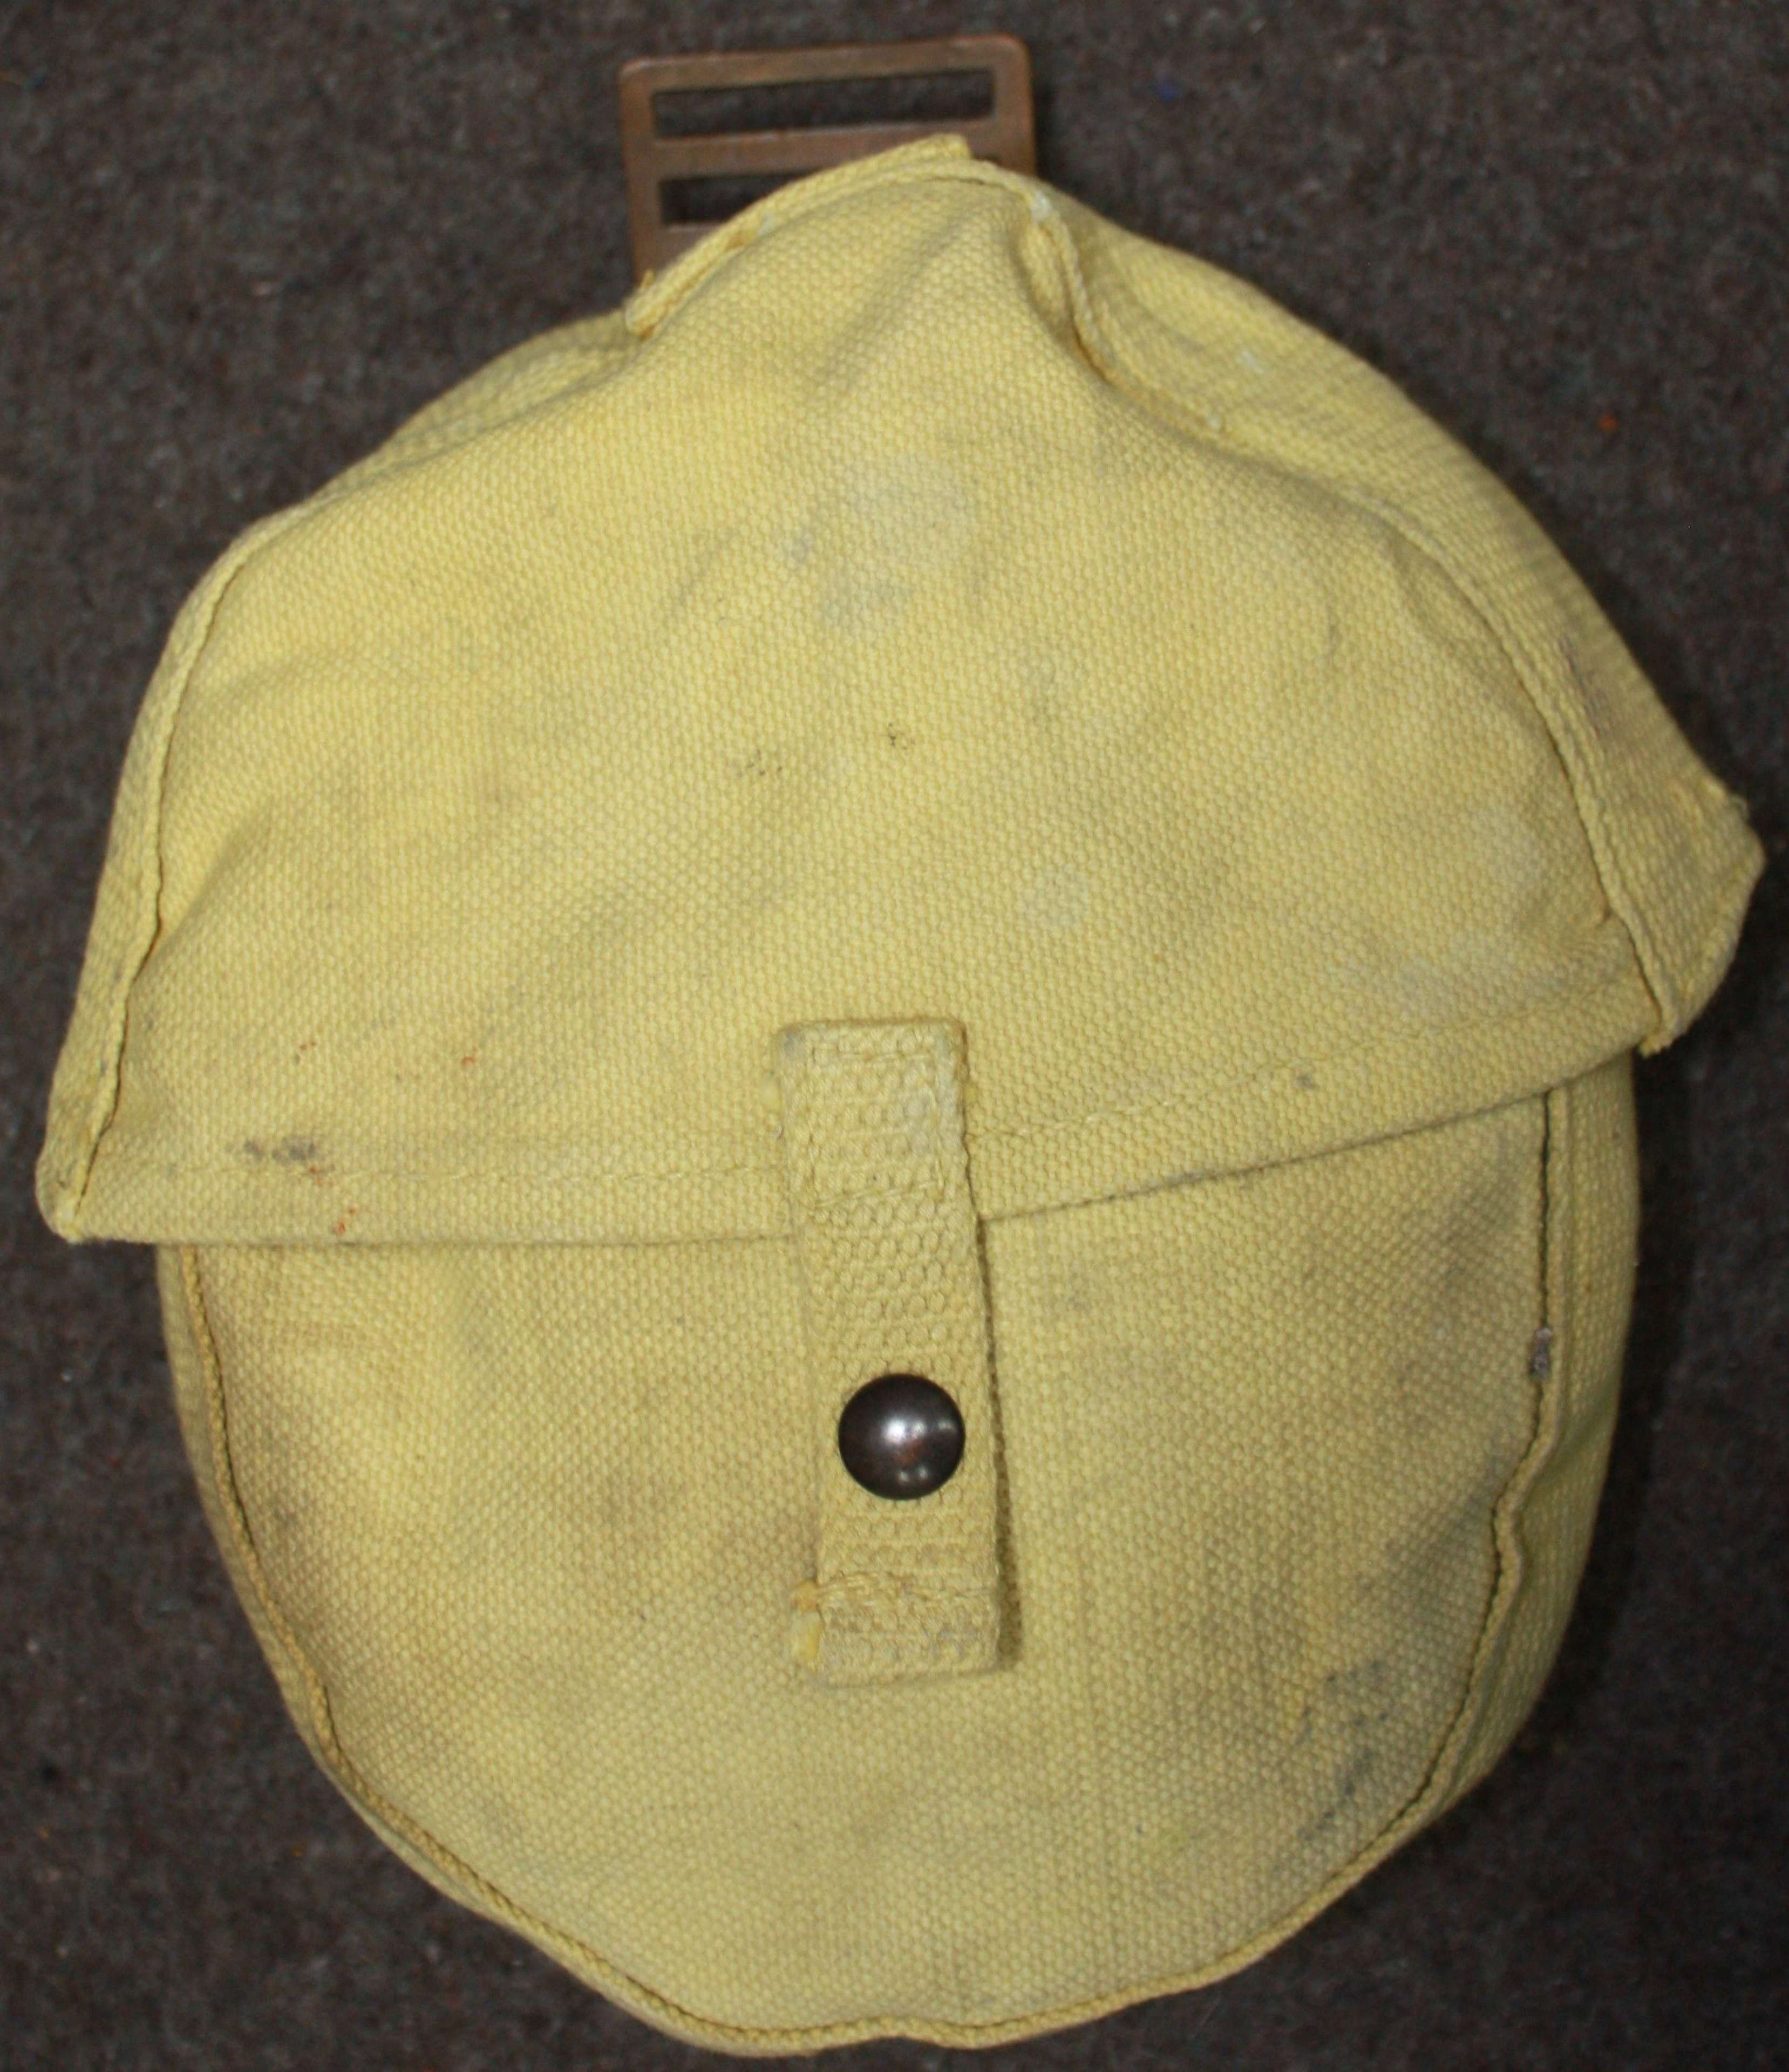 A WWII 1941 YELLOW WEBBING SOUTH AFRICAN LEWIS GUN  MAGAZINE POUCH